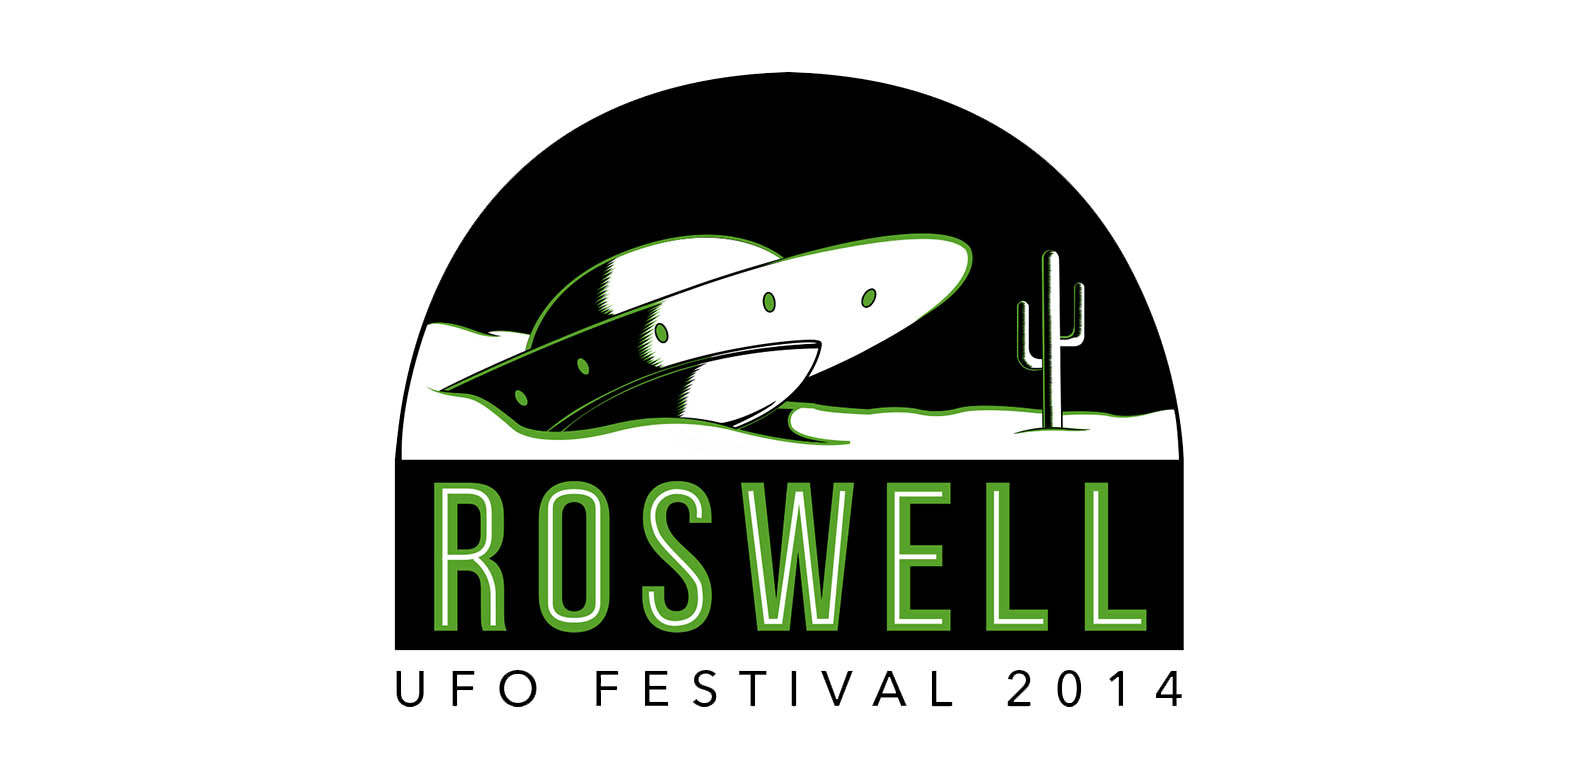 roswell_logo_page.jpg